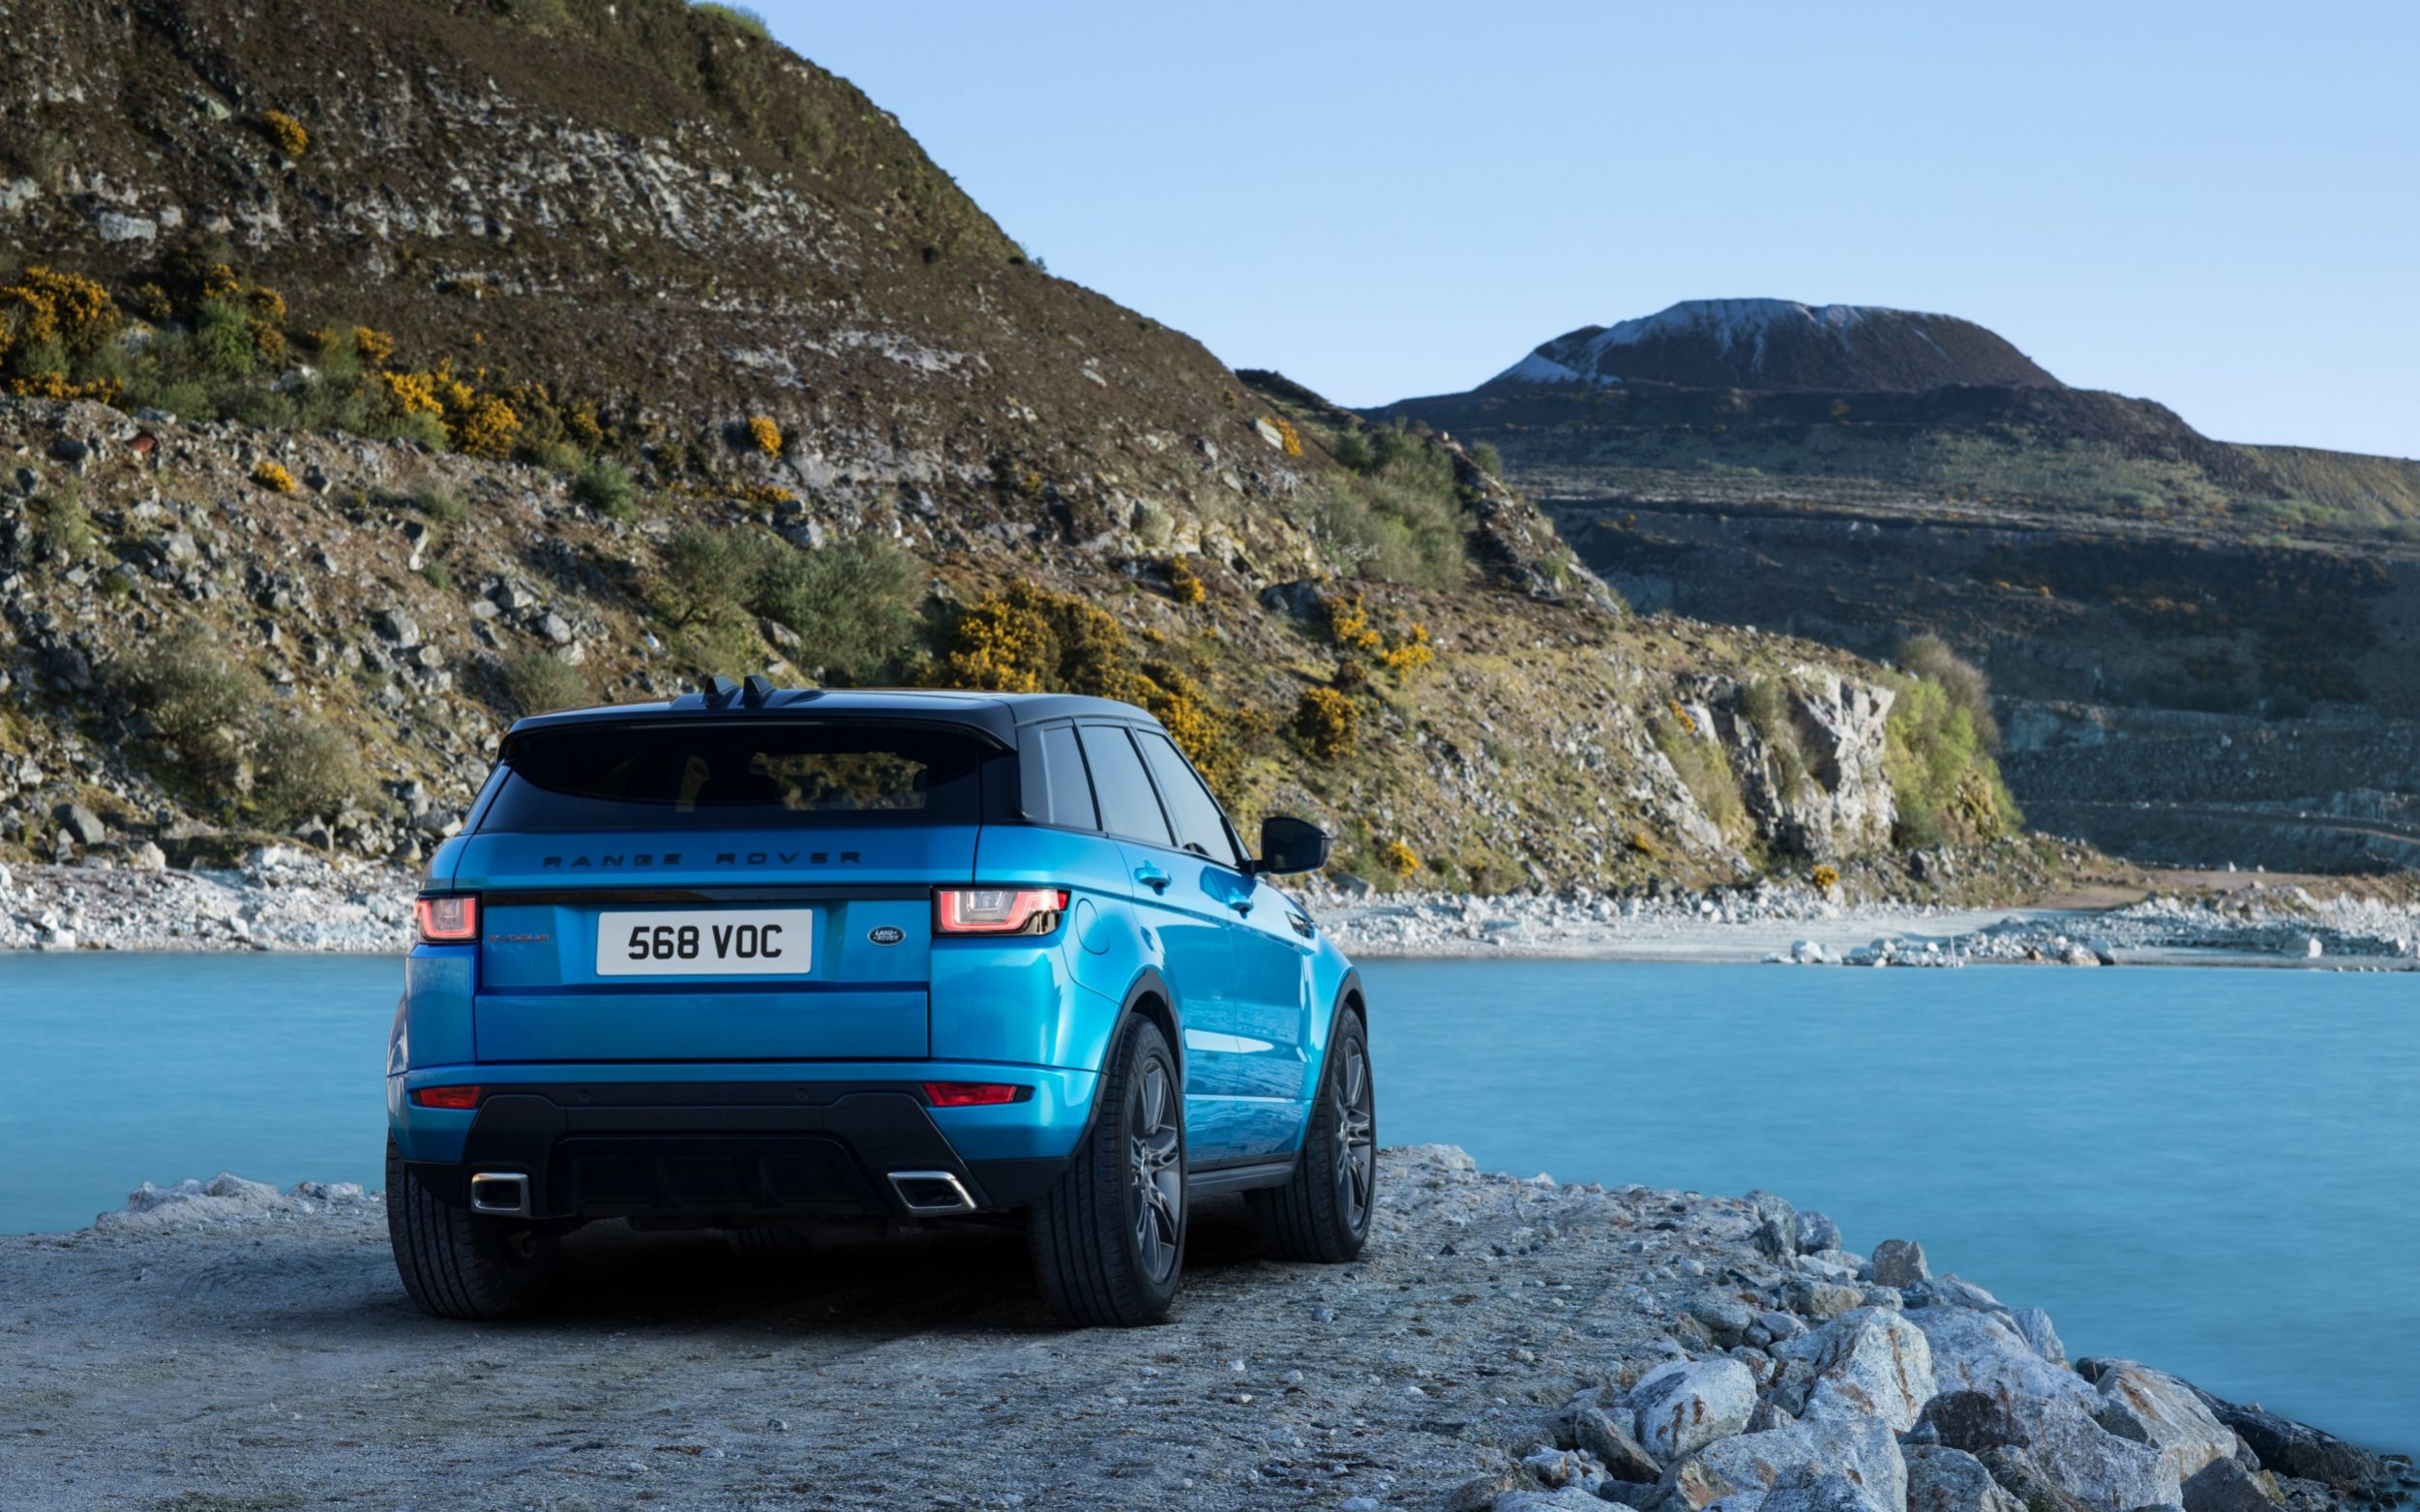 Range Rover Evoque Landmark – JLR launches special edition to